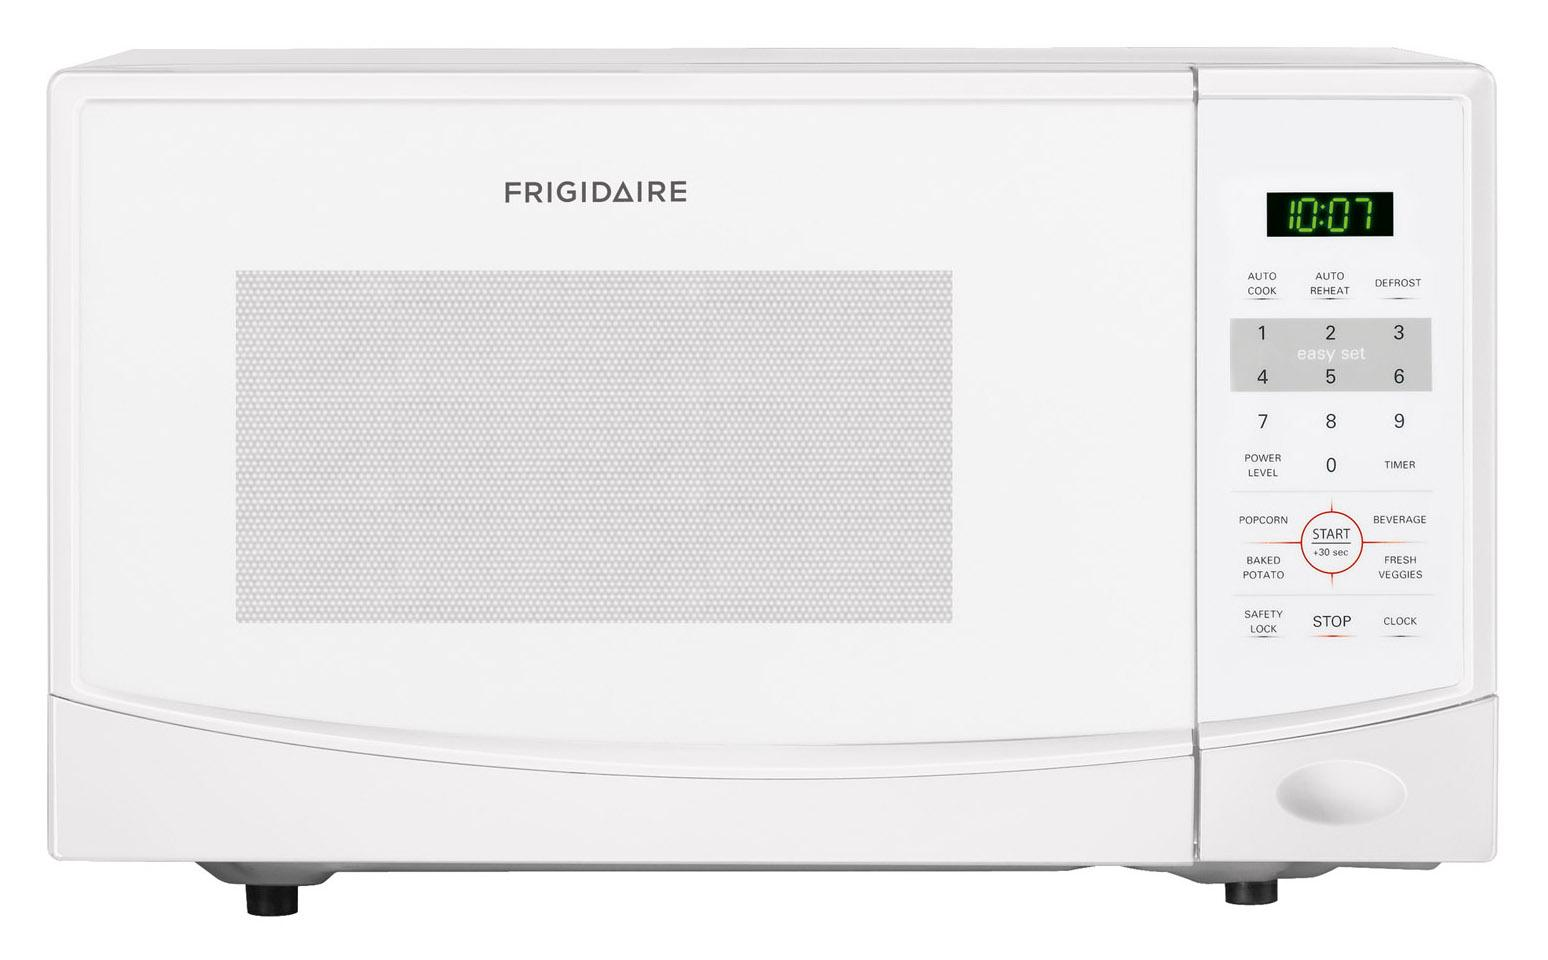 frigidaire ffcm0934lw0 9 cu ft countertop microwave with auto one touch options furniture. Black Bedroom Furniture Sets. Home Design Ideas